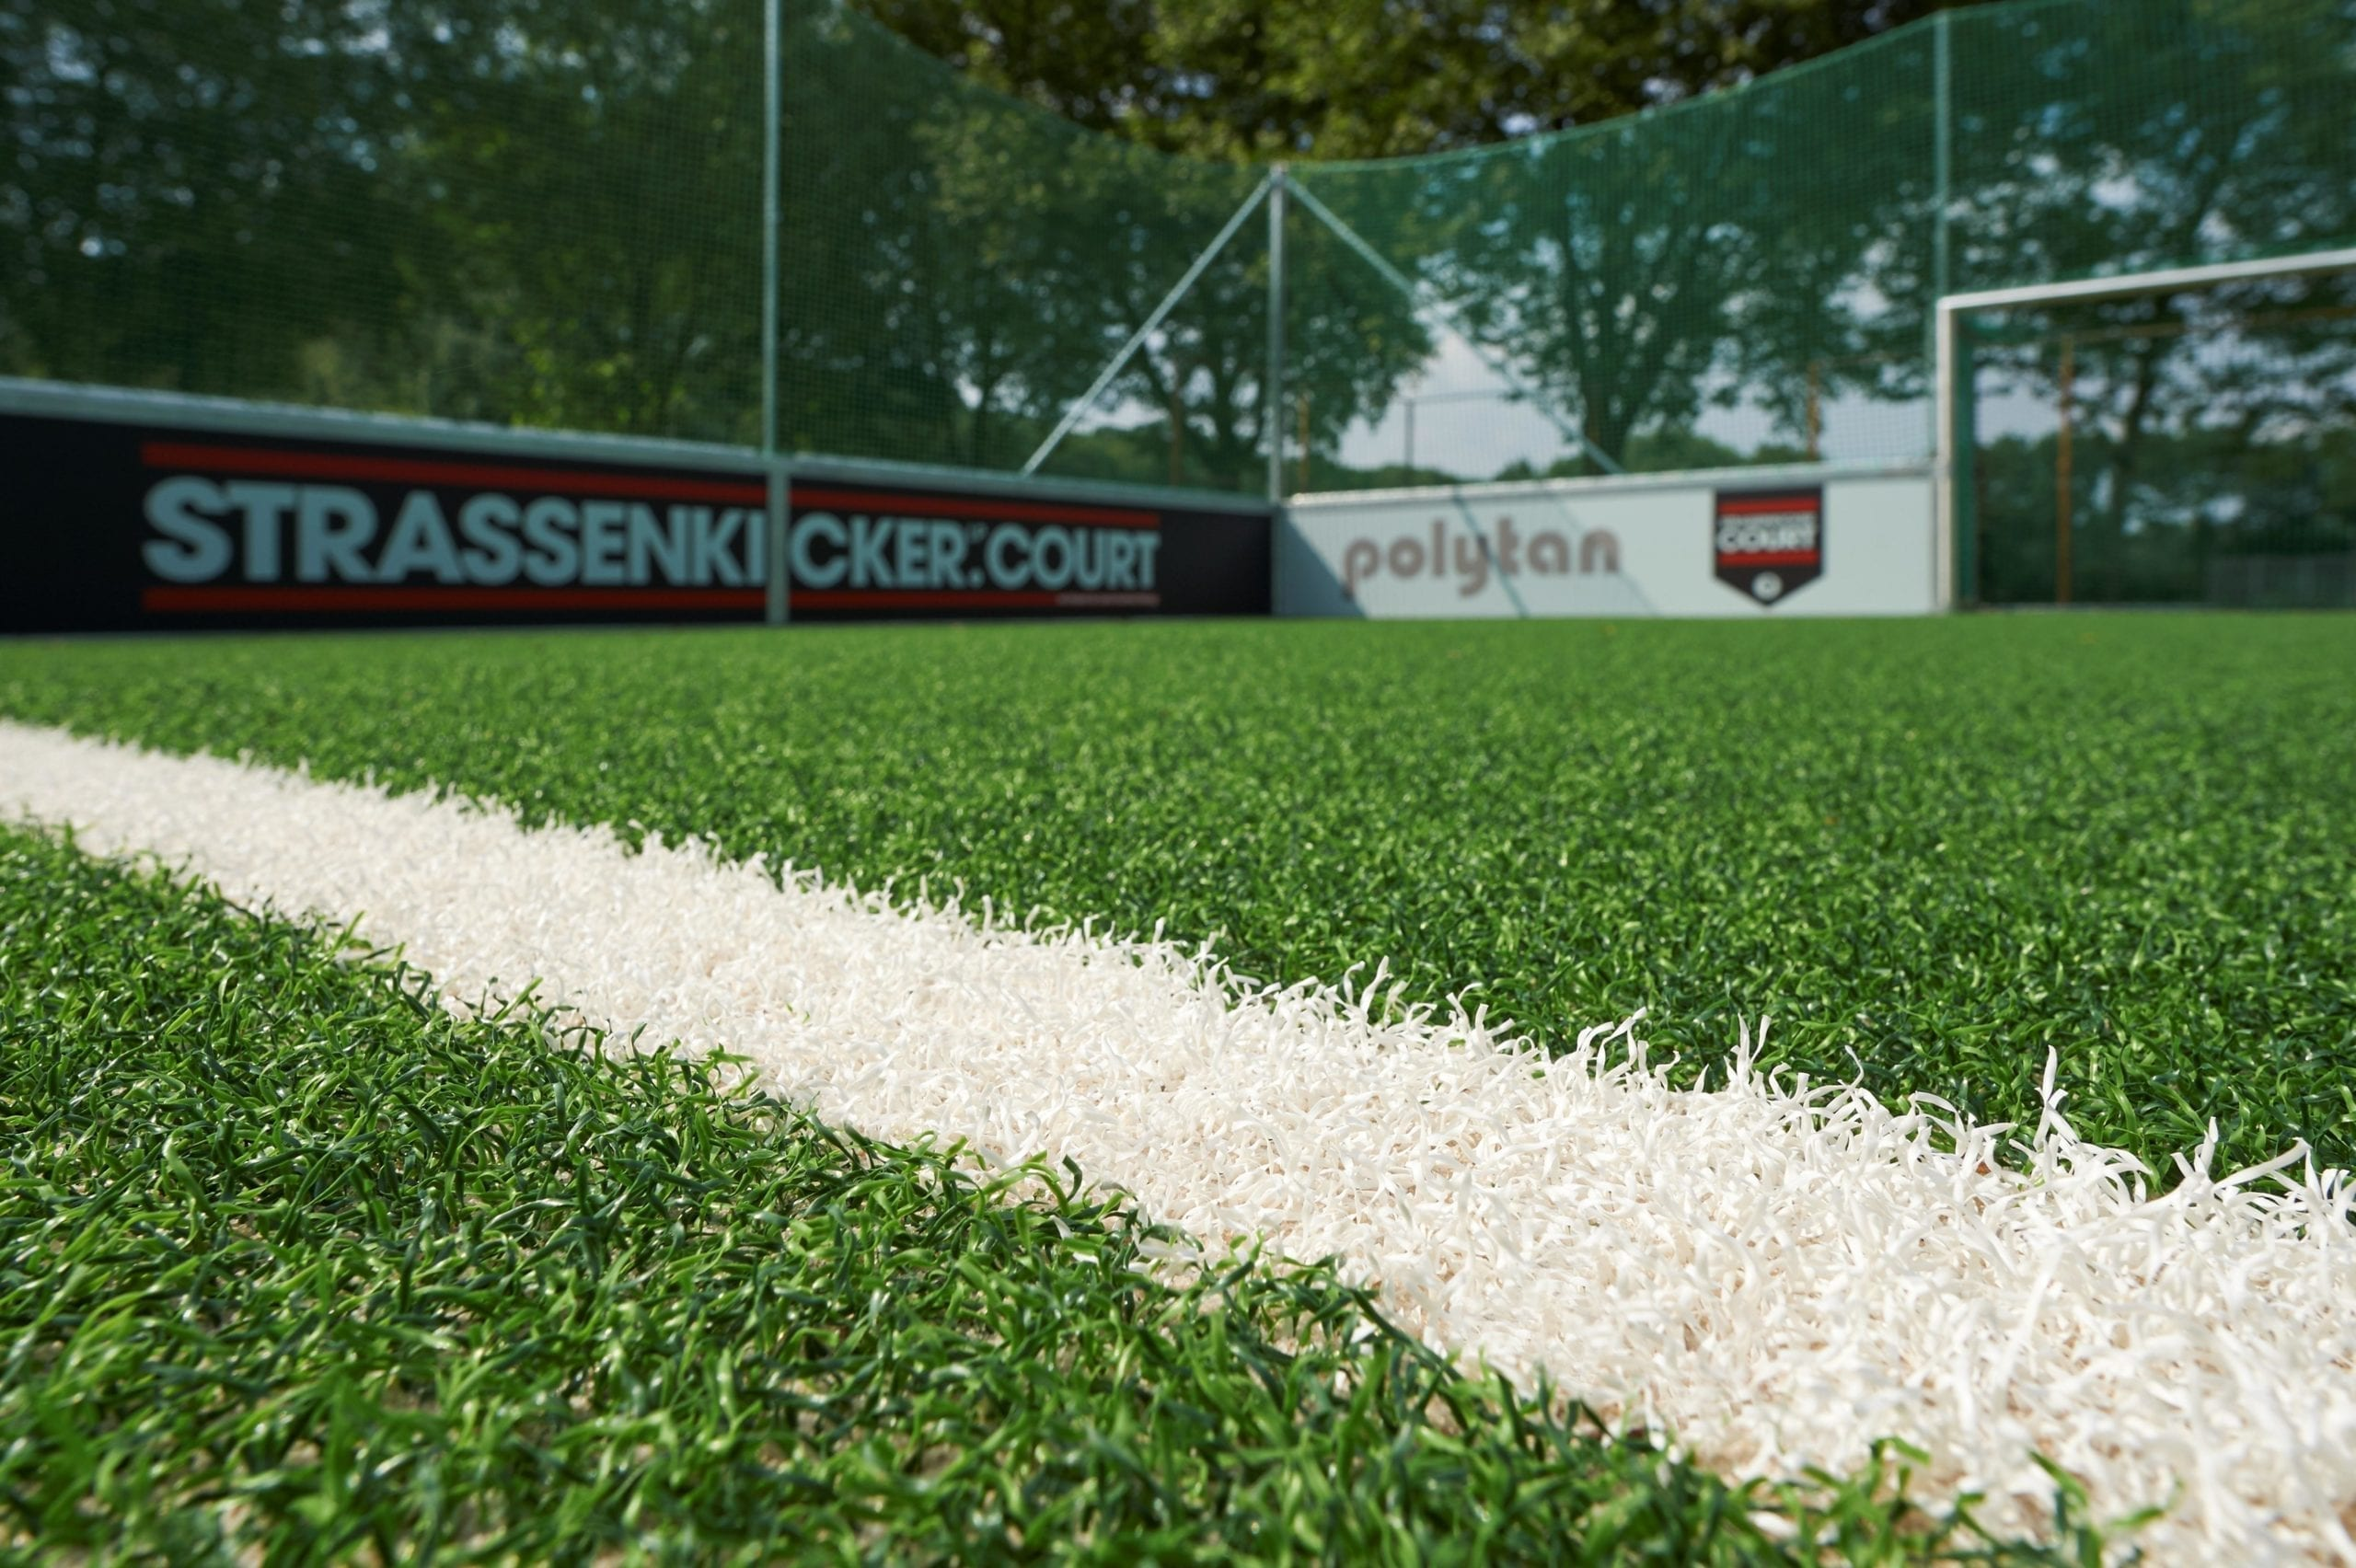 Mini pitches delight children and adults alike: